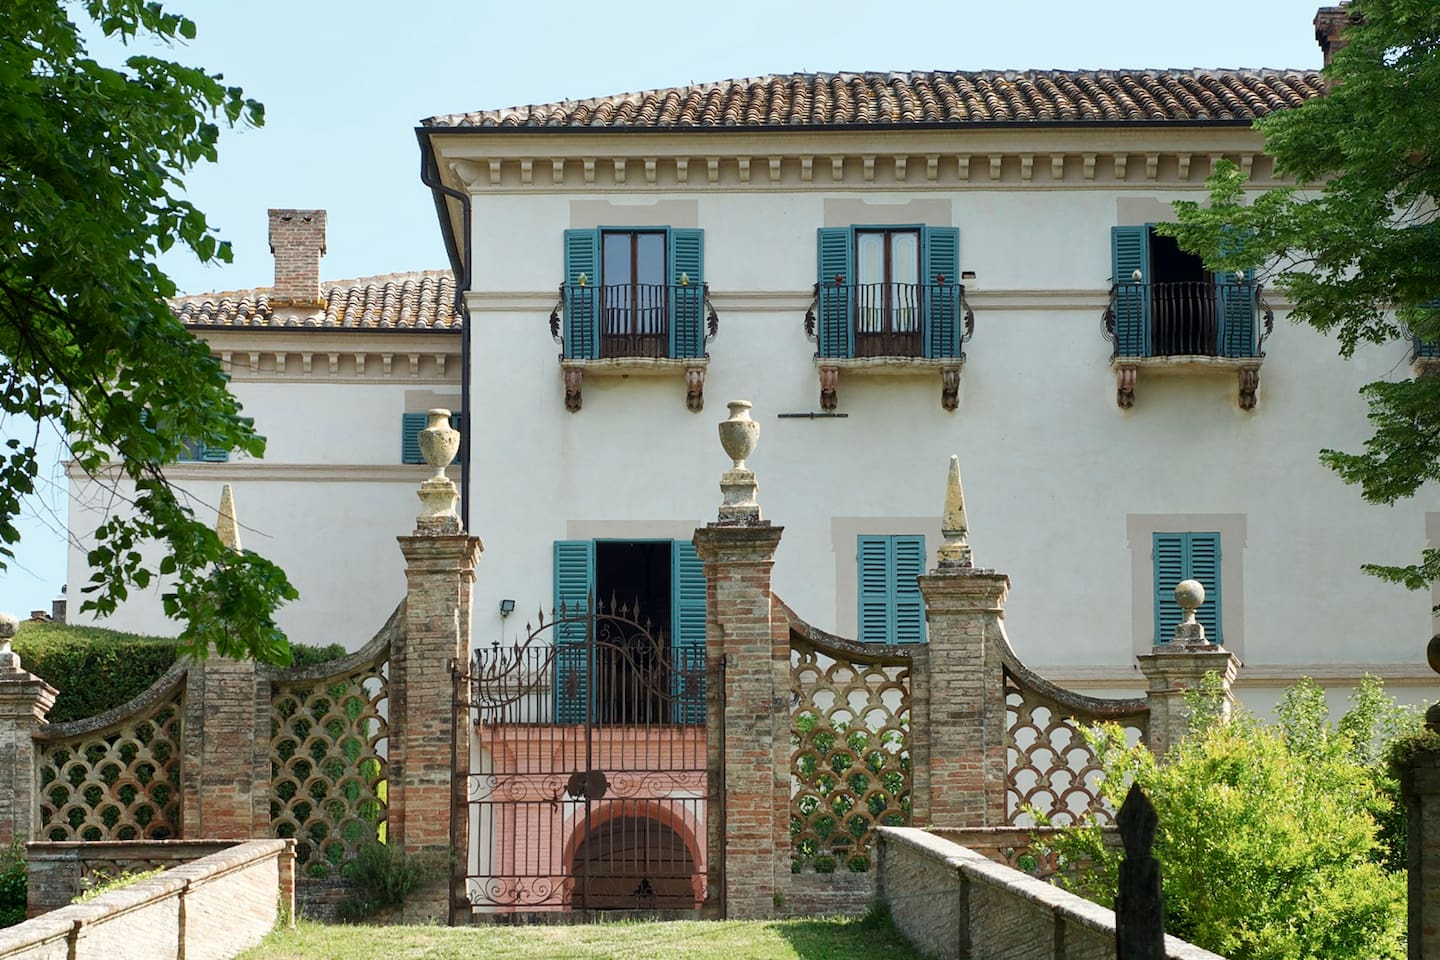 Villa Aureli with the gate leading to the lower garden